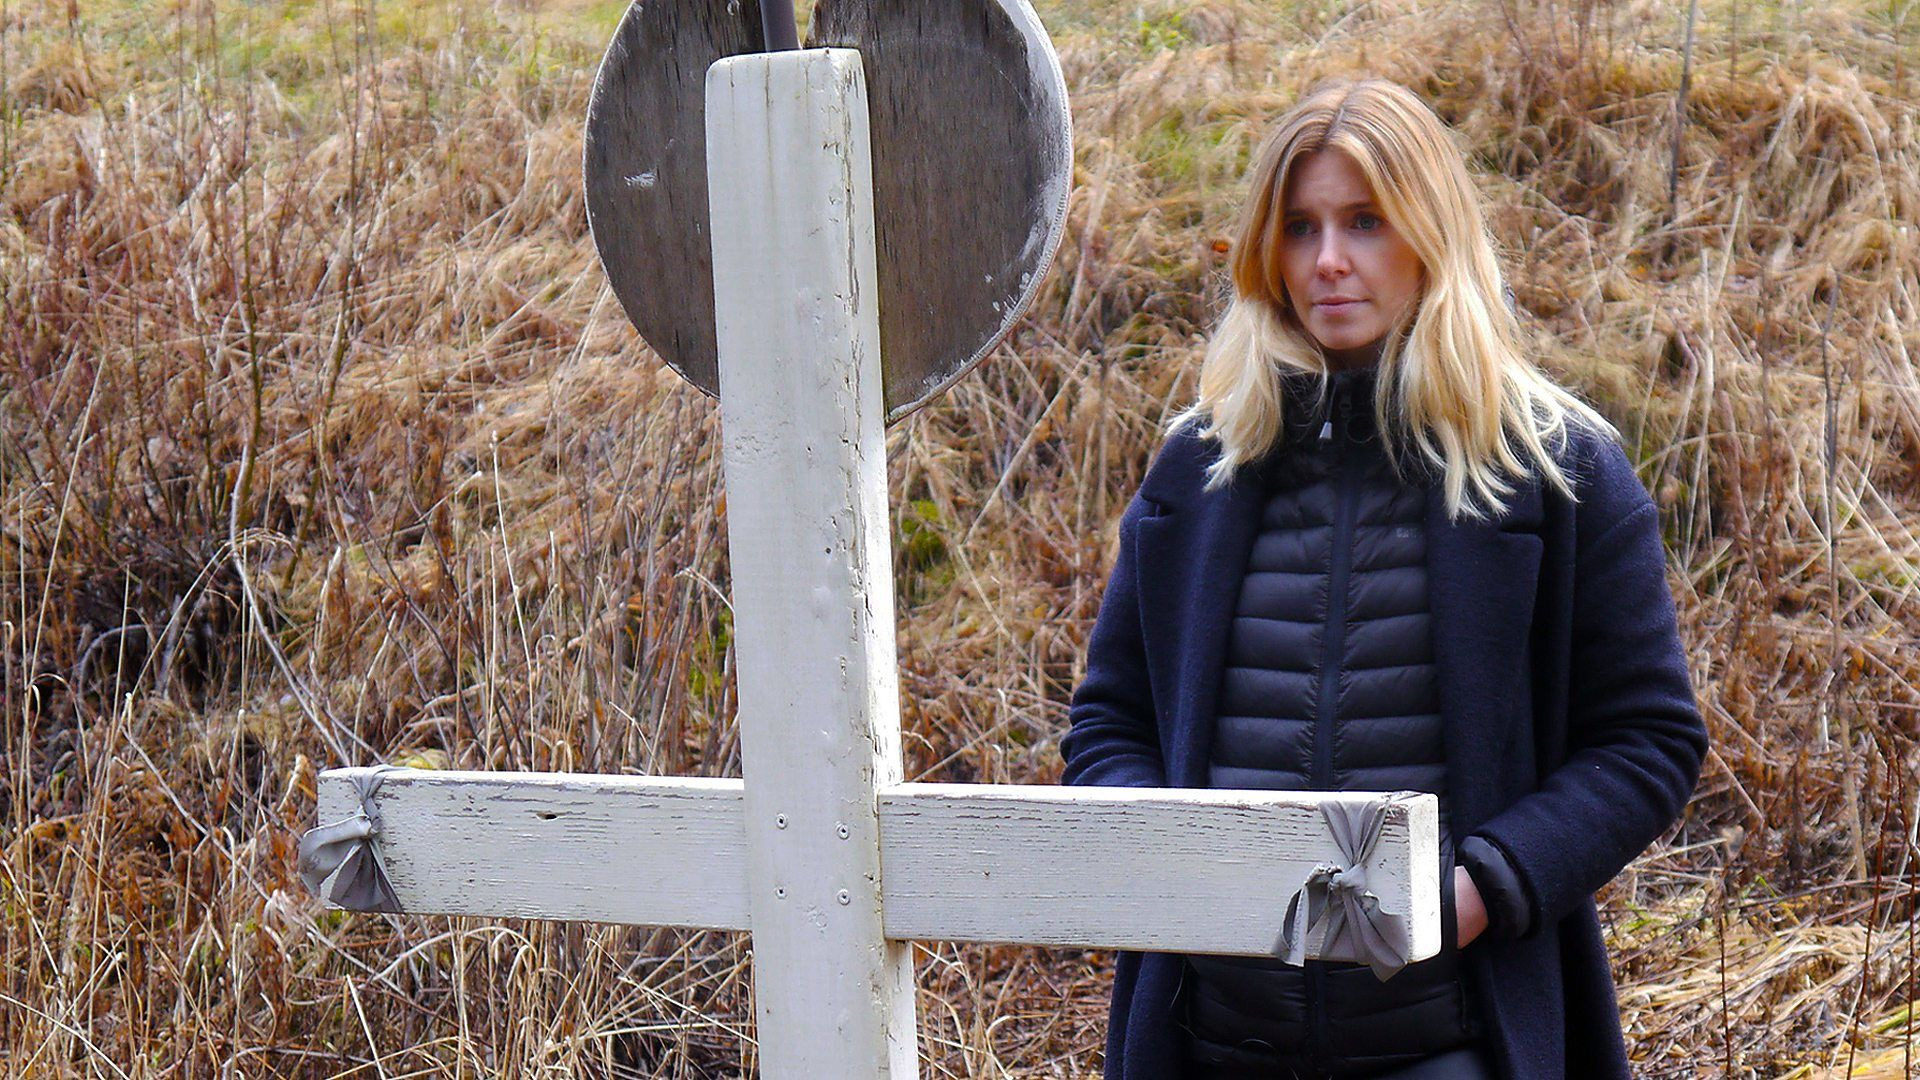 Stacey Dooley Investigates — s07 special-3 — Canada's Lost Girls